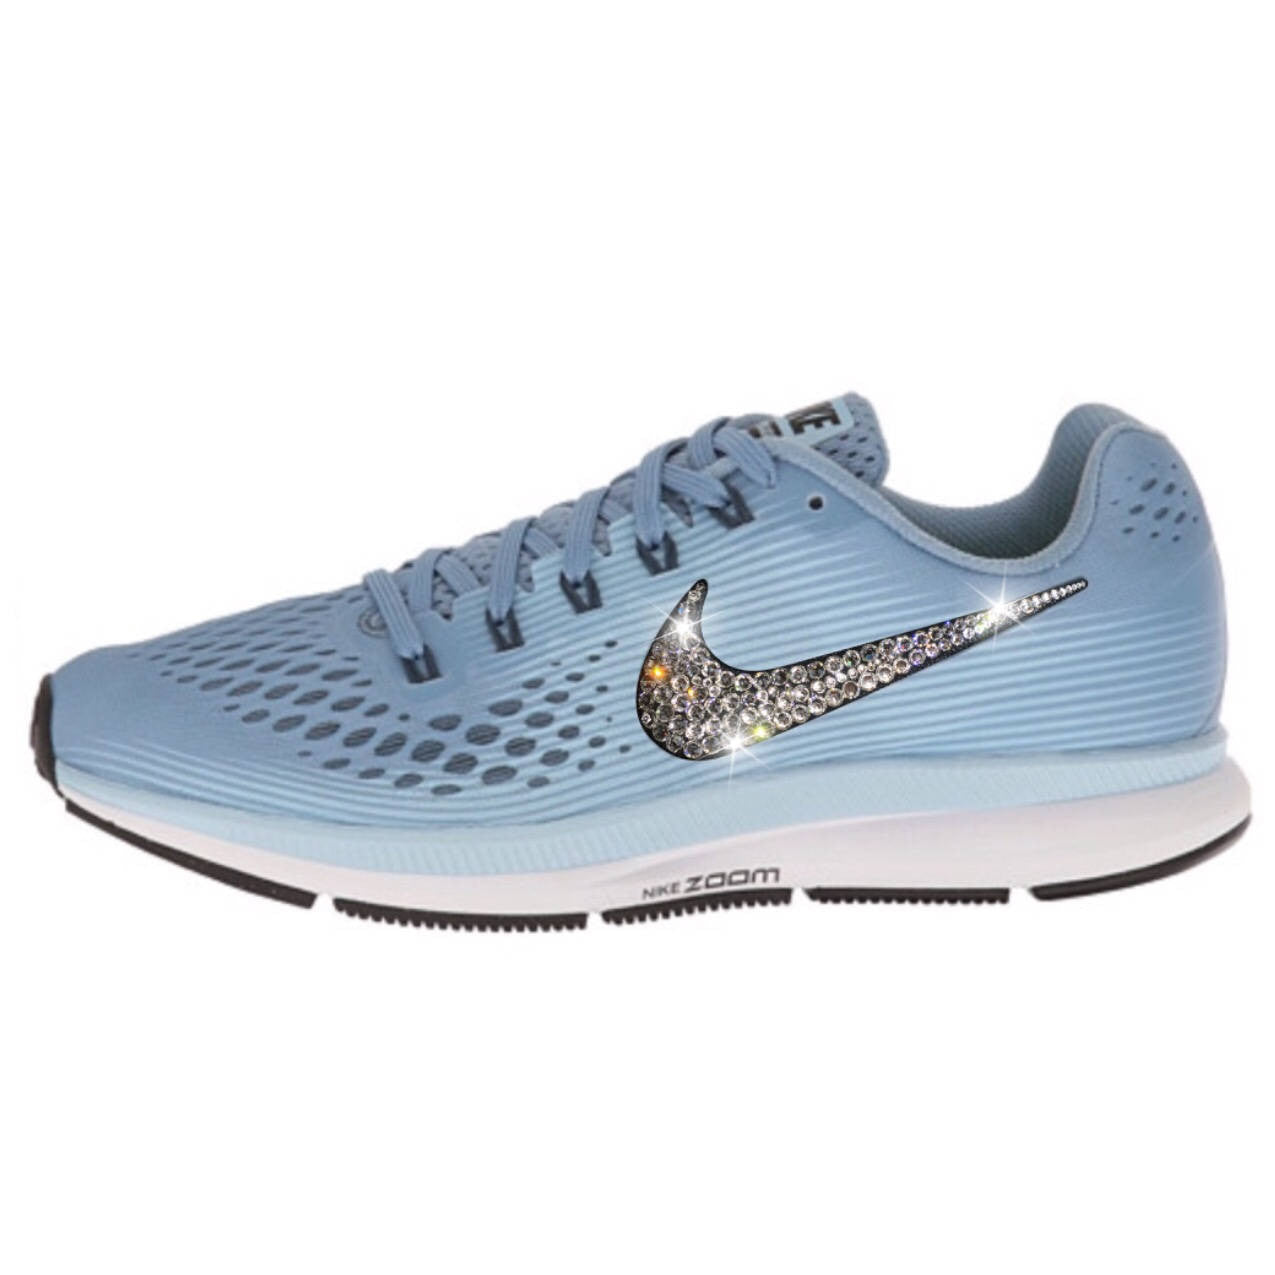 50620a85fb4f NEW Bling Nike Air Zoom Pegasus 34 Shoes with Swarovski Crystals   Blue    White ...